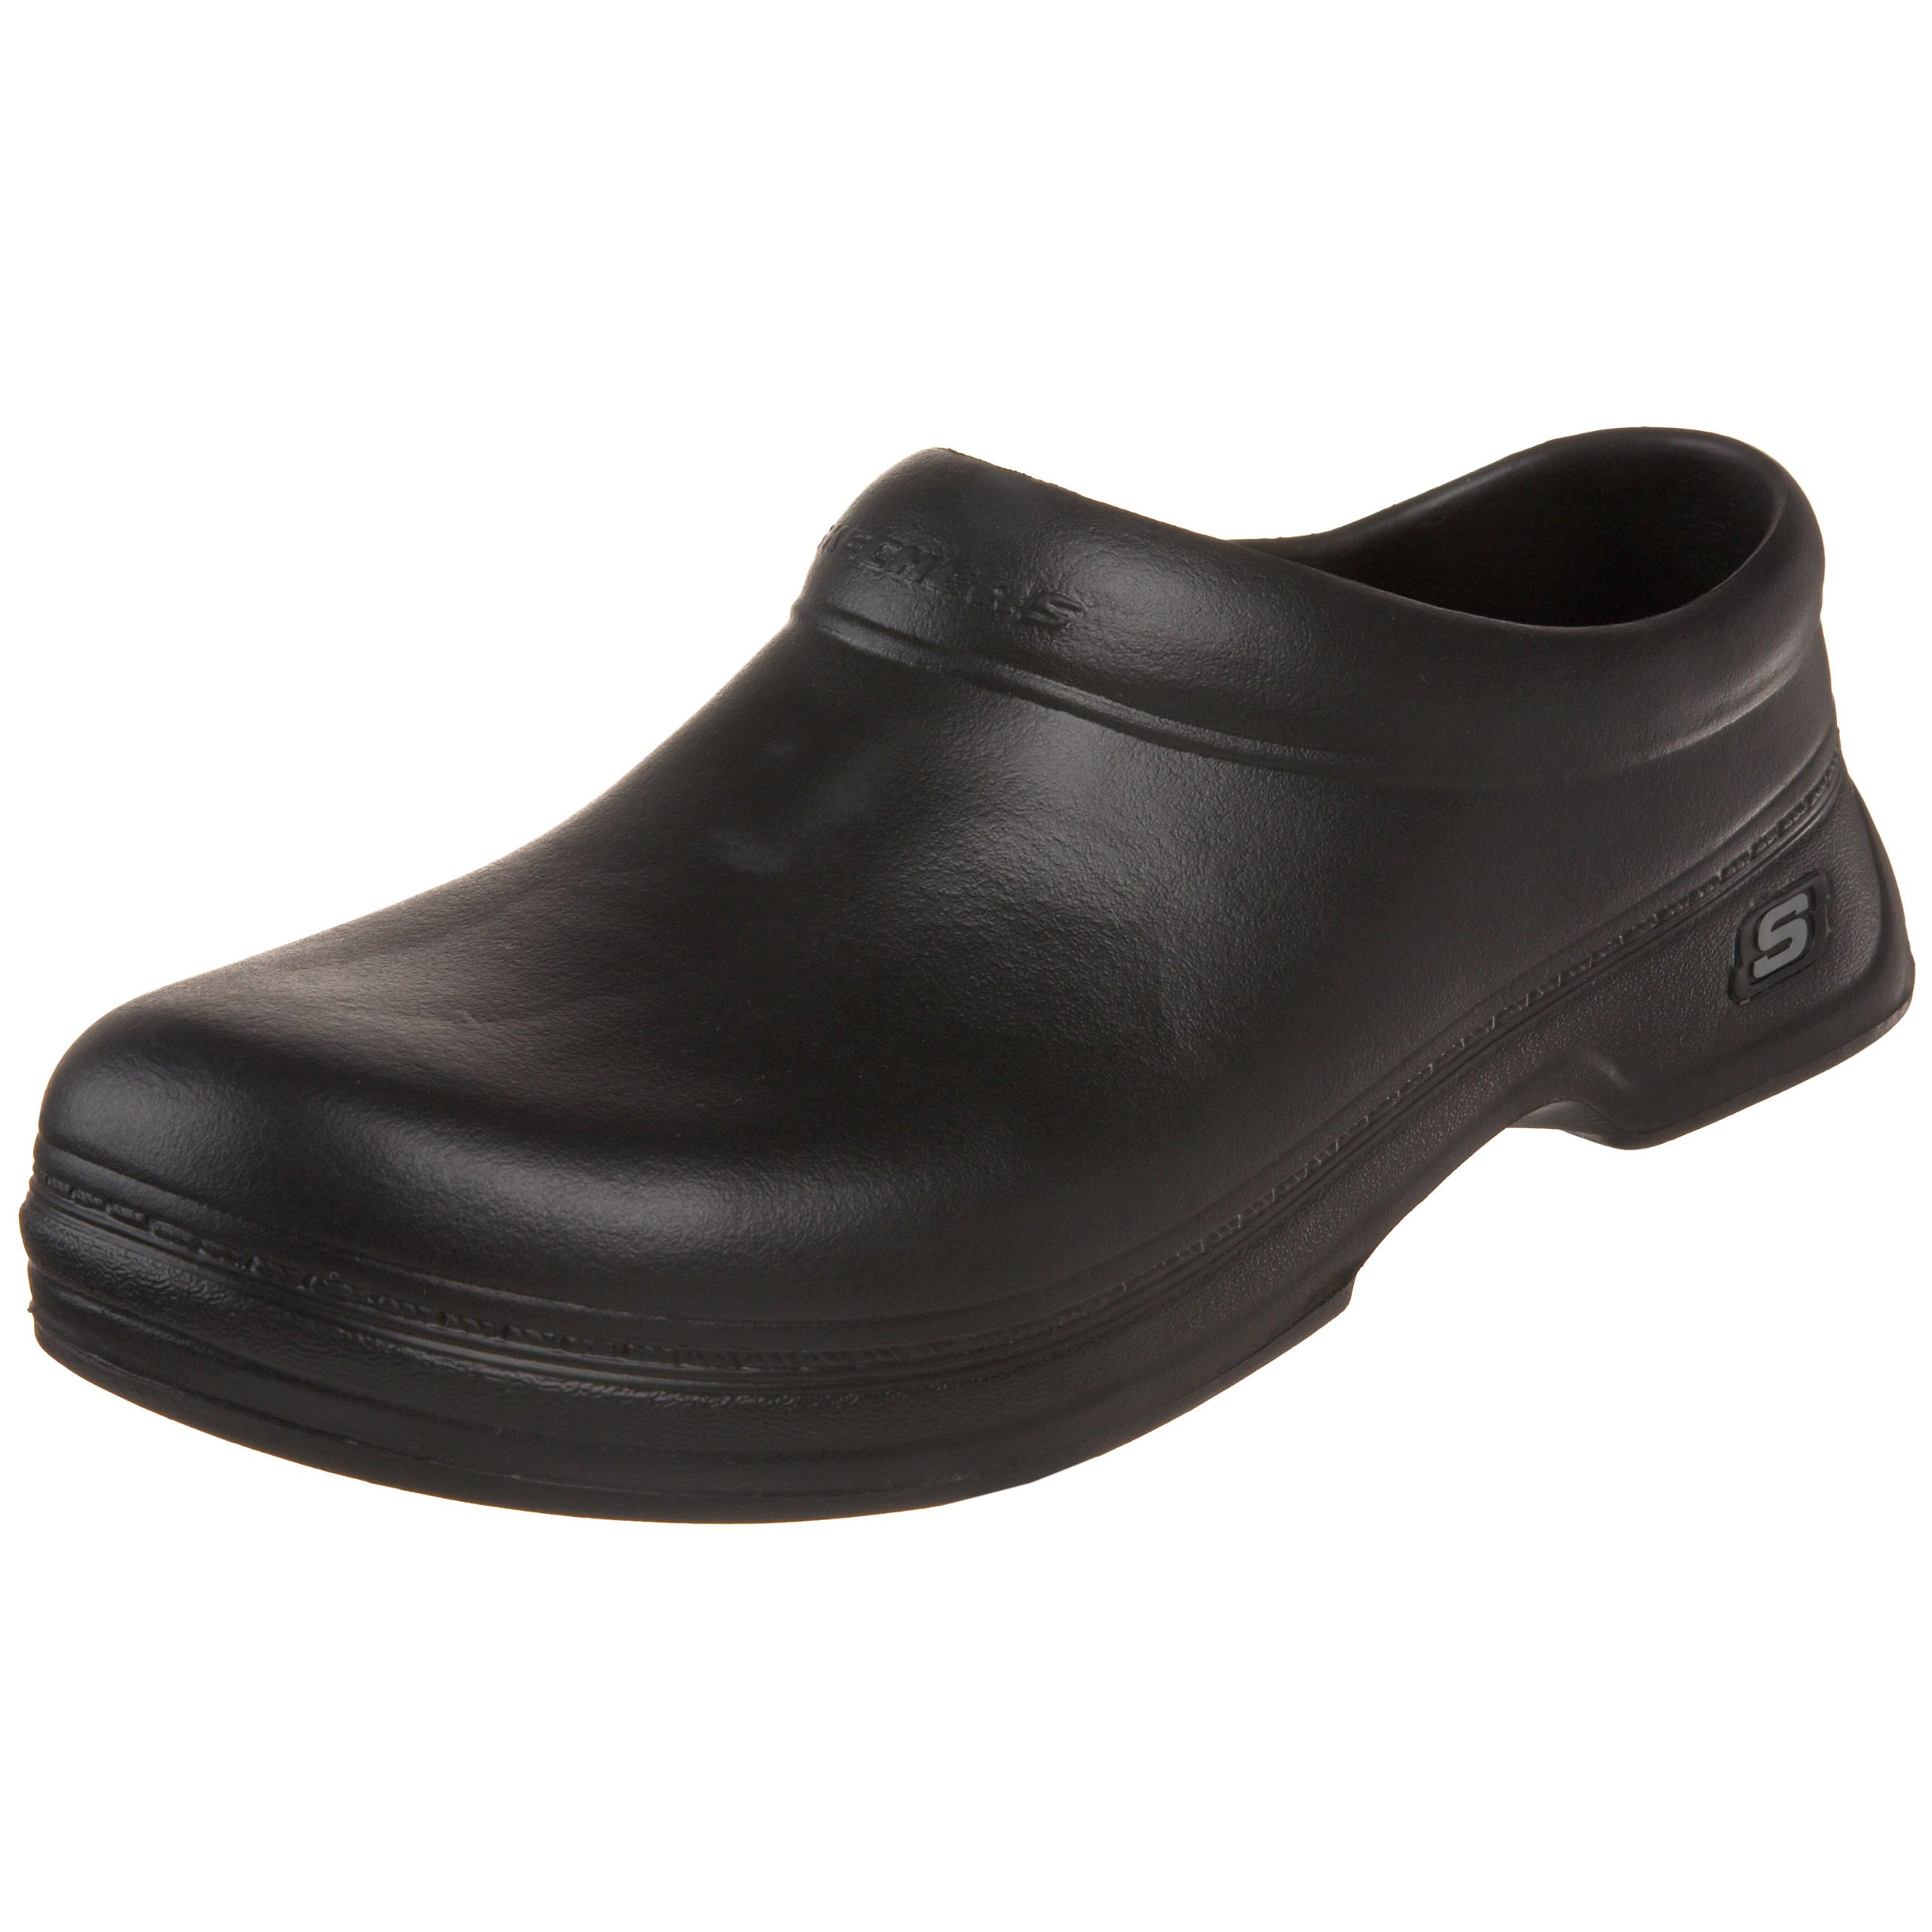 Skechers for Work Men's Balder Clog, Black, 11 M US